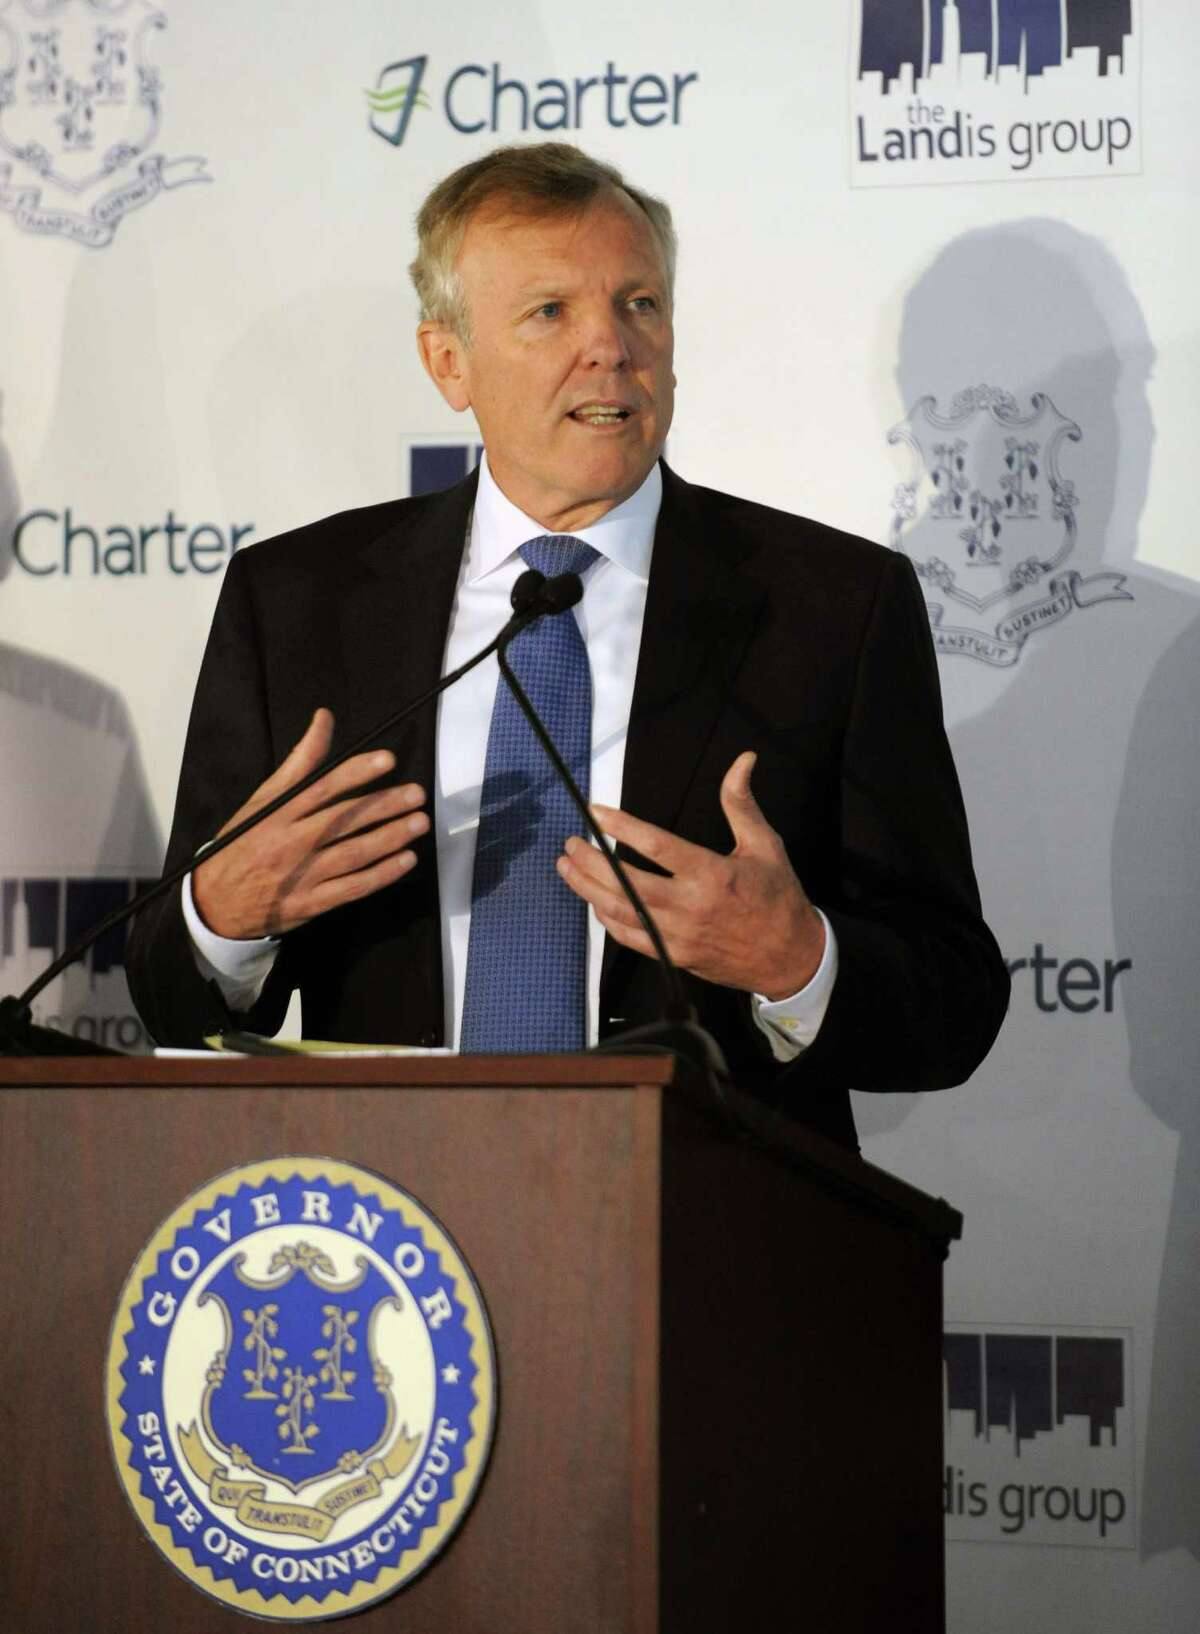 Charter Communications CEO Tom Rutledge in October 2012, after announcing his company would establish its headquarters in Stamford, Conn. On December 17, 2015, Charter announced plans to offer a first-of-its kind $14.99 broadband service for lower-income subscribers.